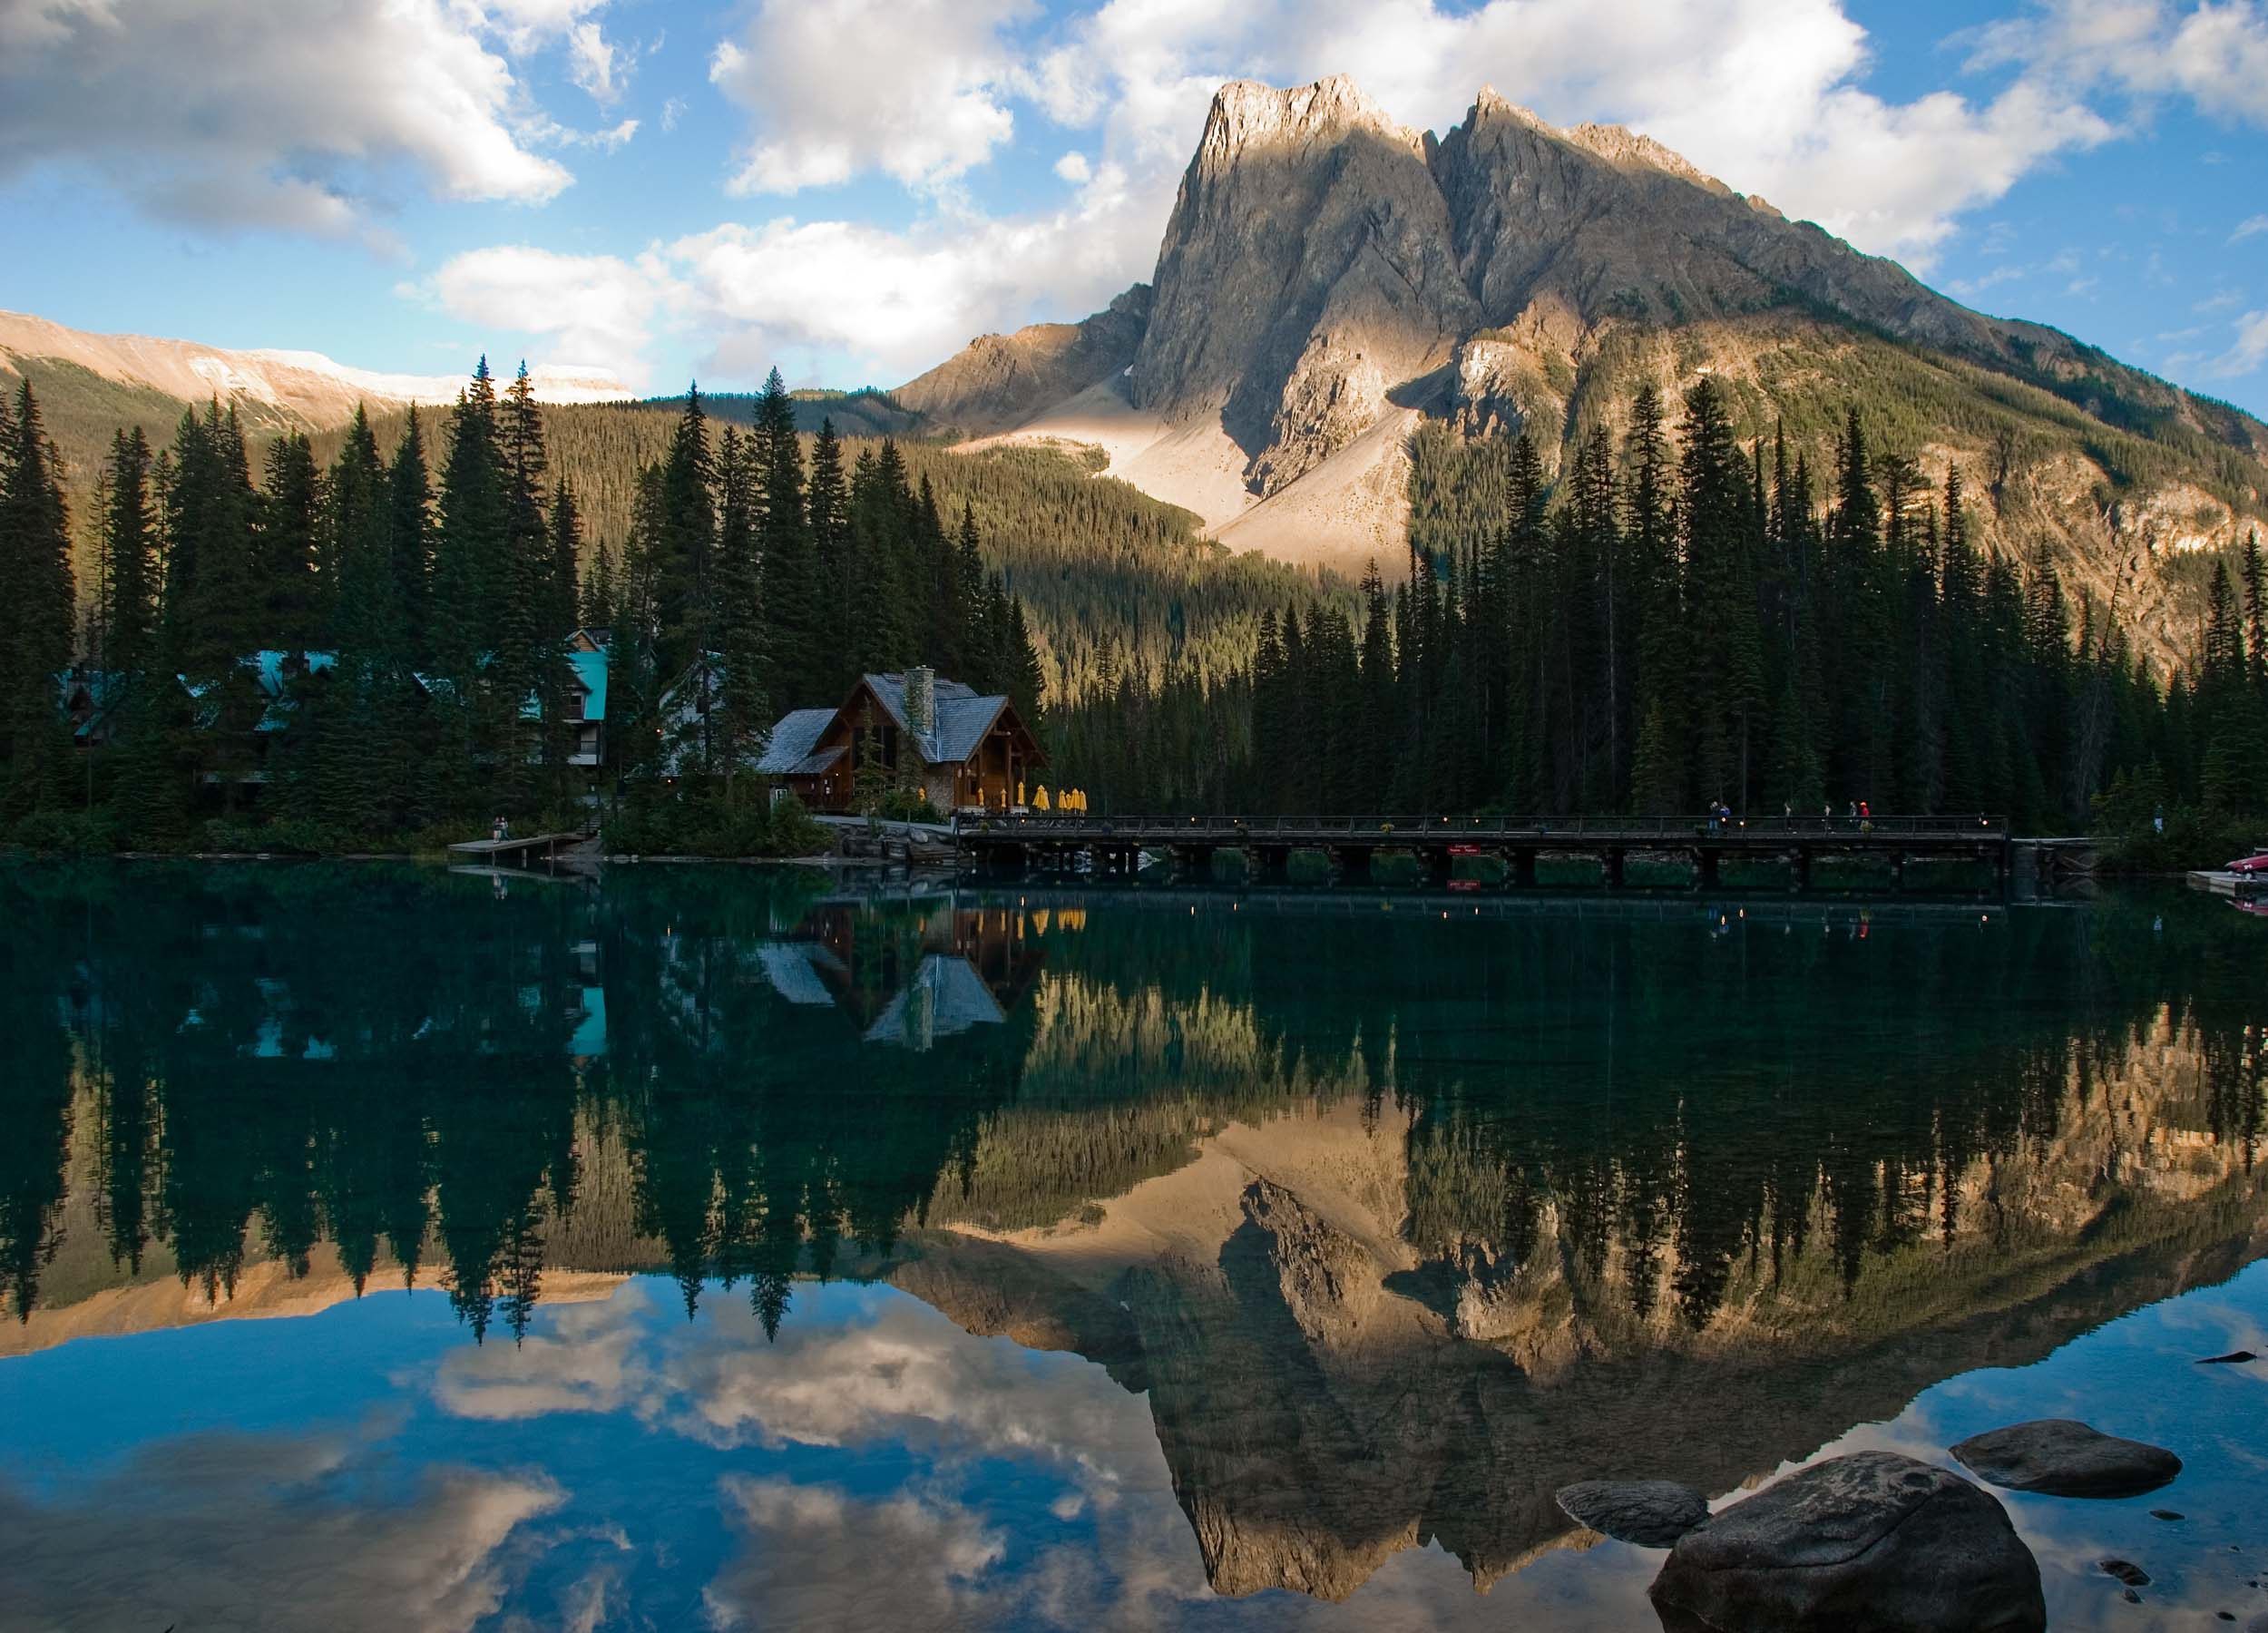 Emerald Lake, BC (inside Yoho National Park) is one of the most magical places in all of Canada. As part of Canada 150, here is the third photo (fourth in the series) of Emerald Lake.